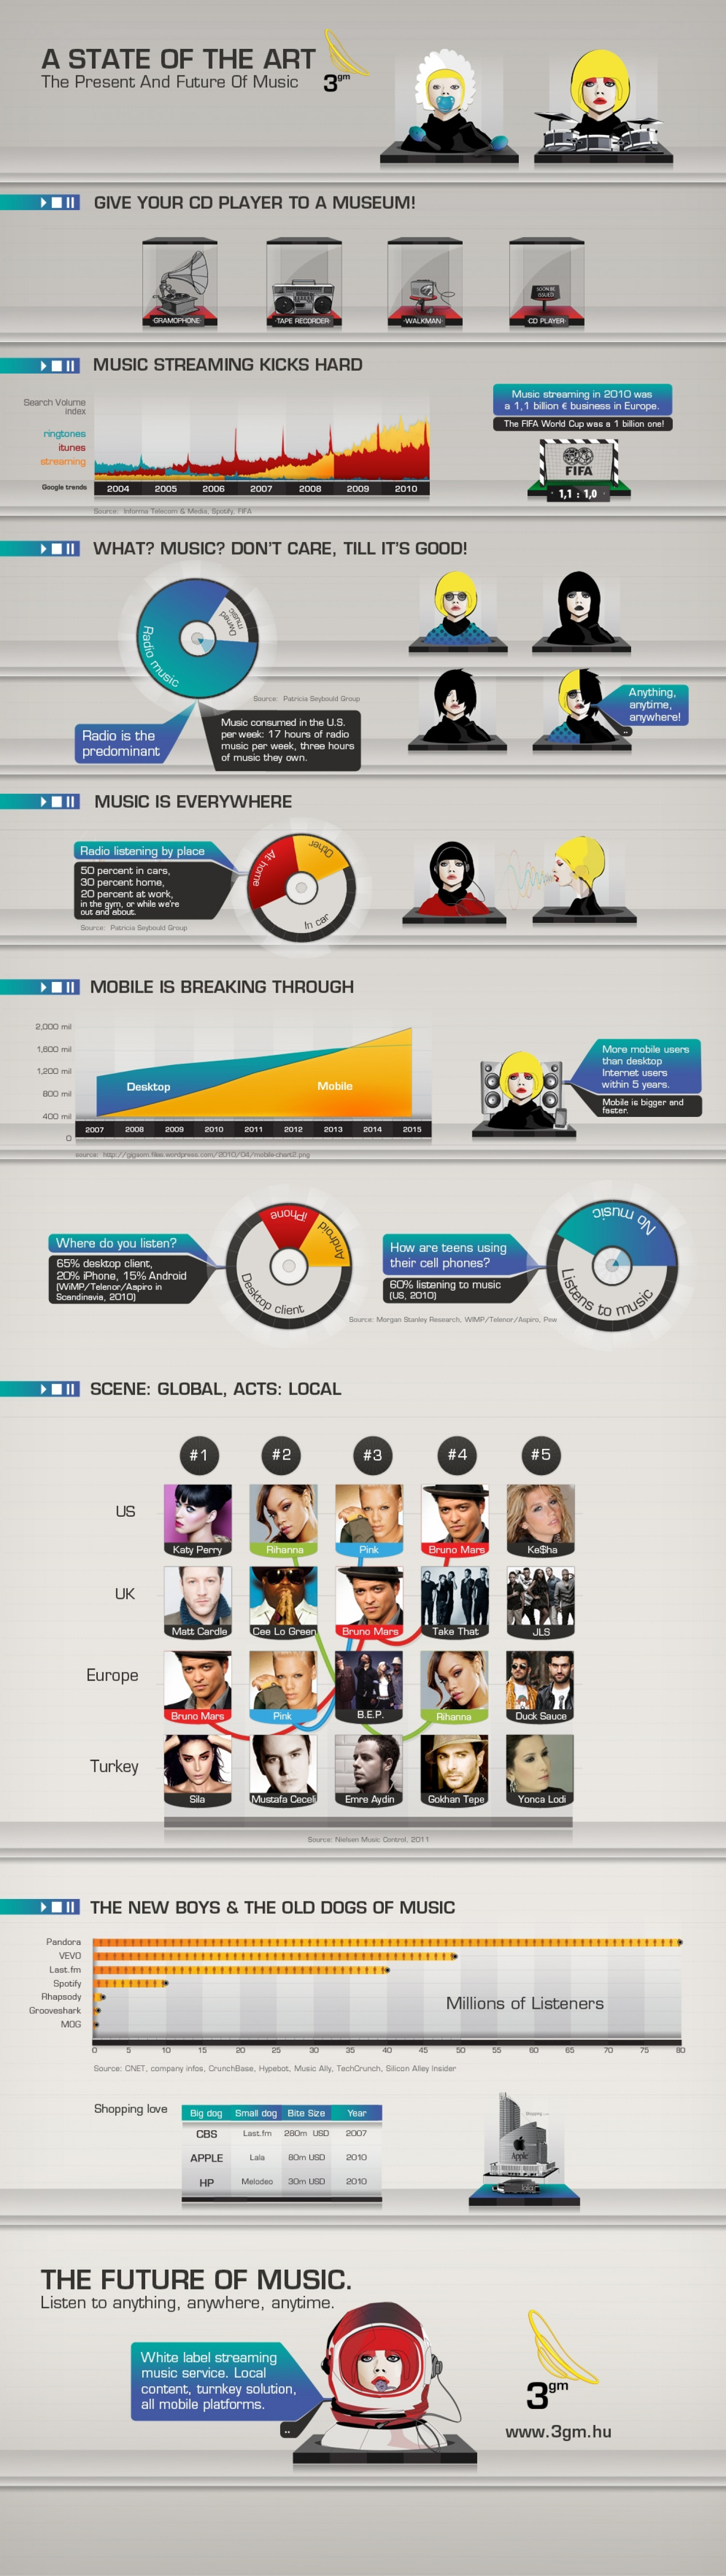 State of the Art: The Present and Future of Music Infographic